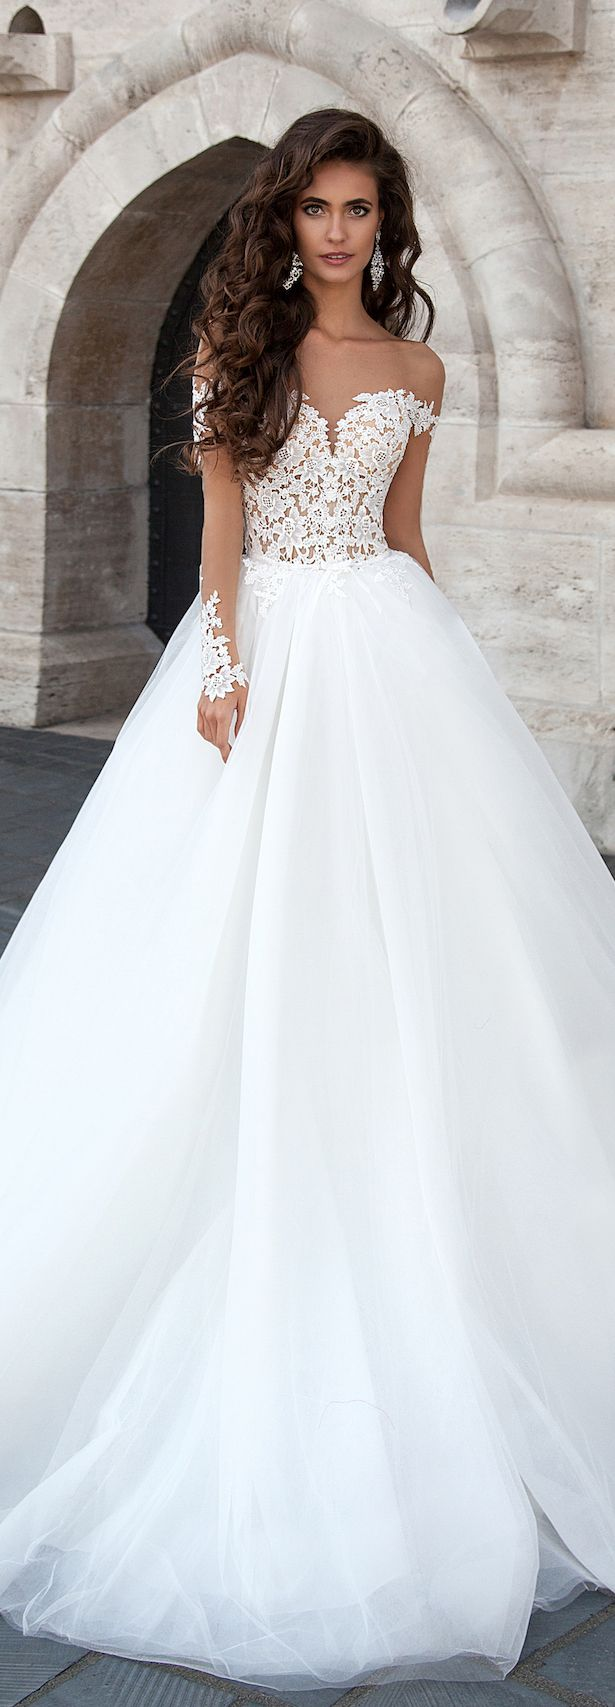 1928 best images about beautiful wedding gowns on for Wedding dresses for tall skinny brides